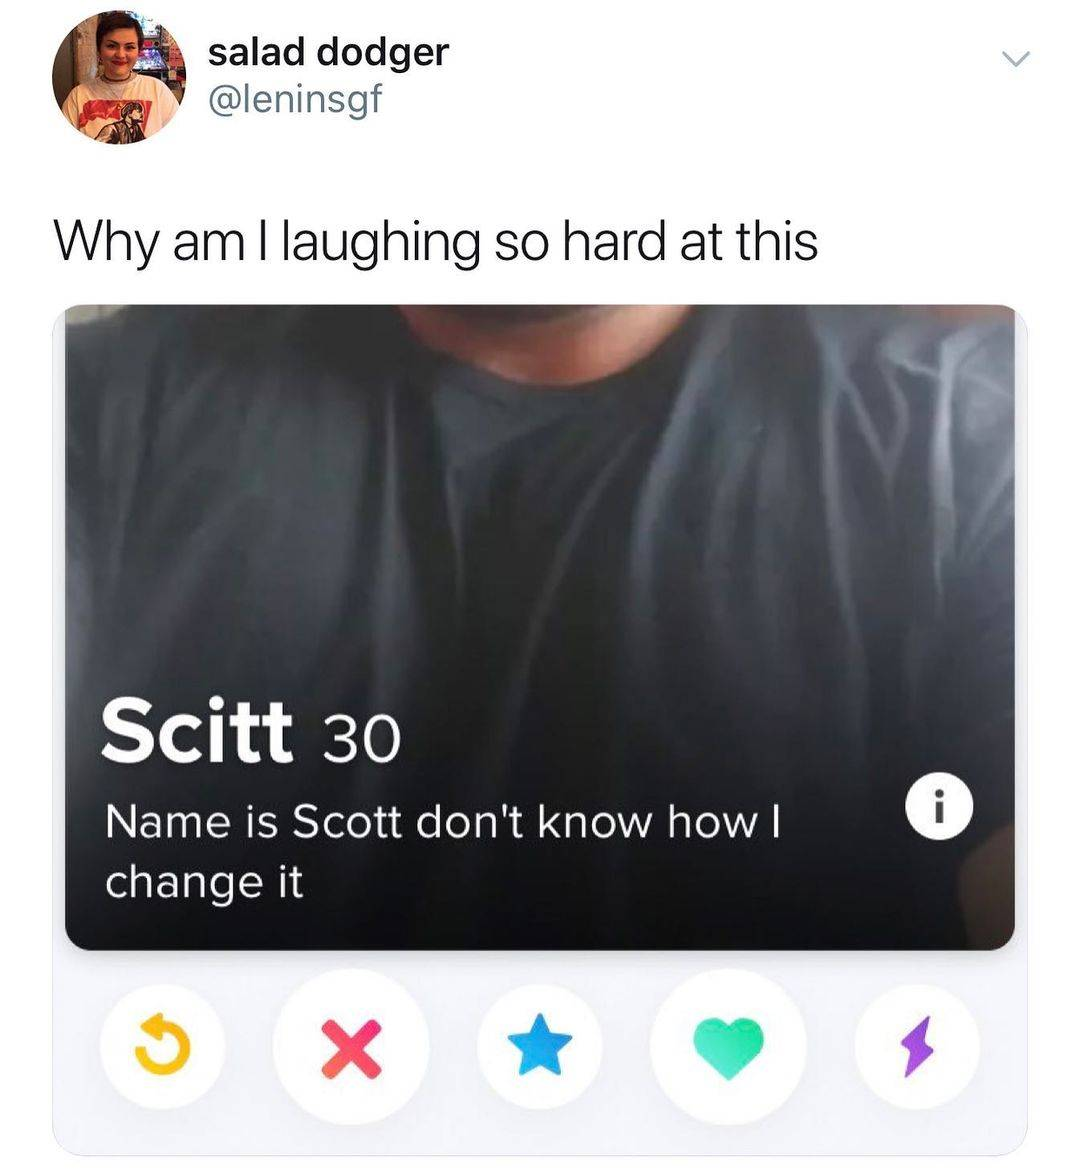 someone with the name Scott has Scitt as their name on their Tinder and don't know how to change it